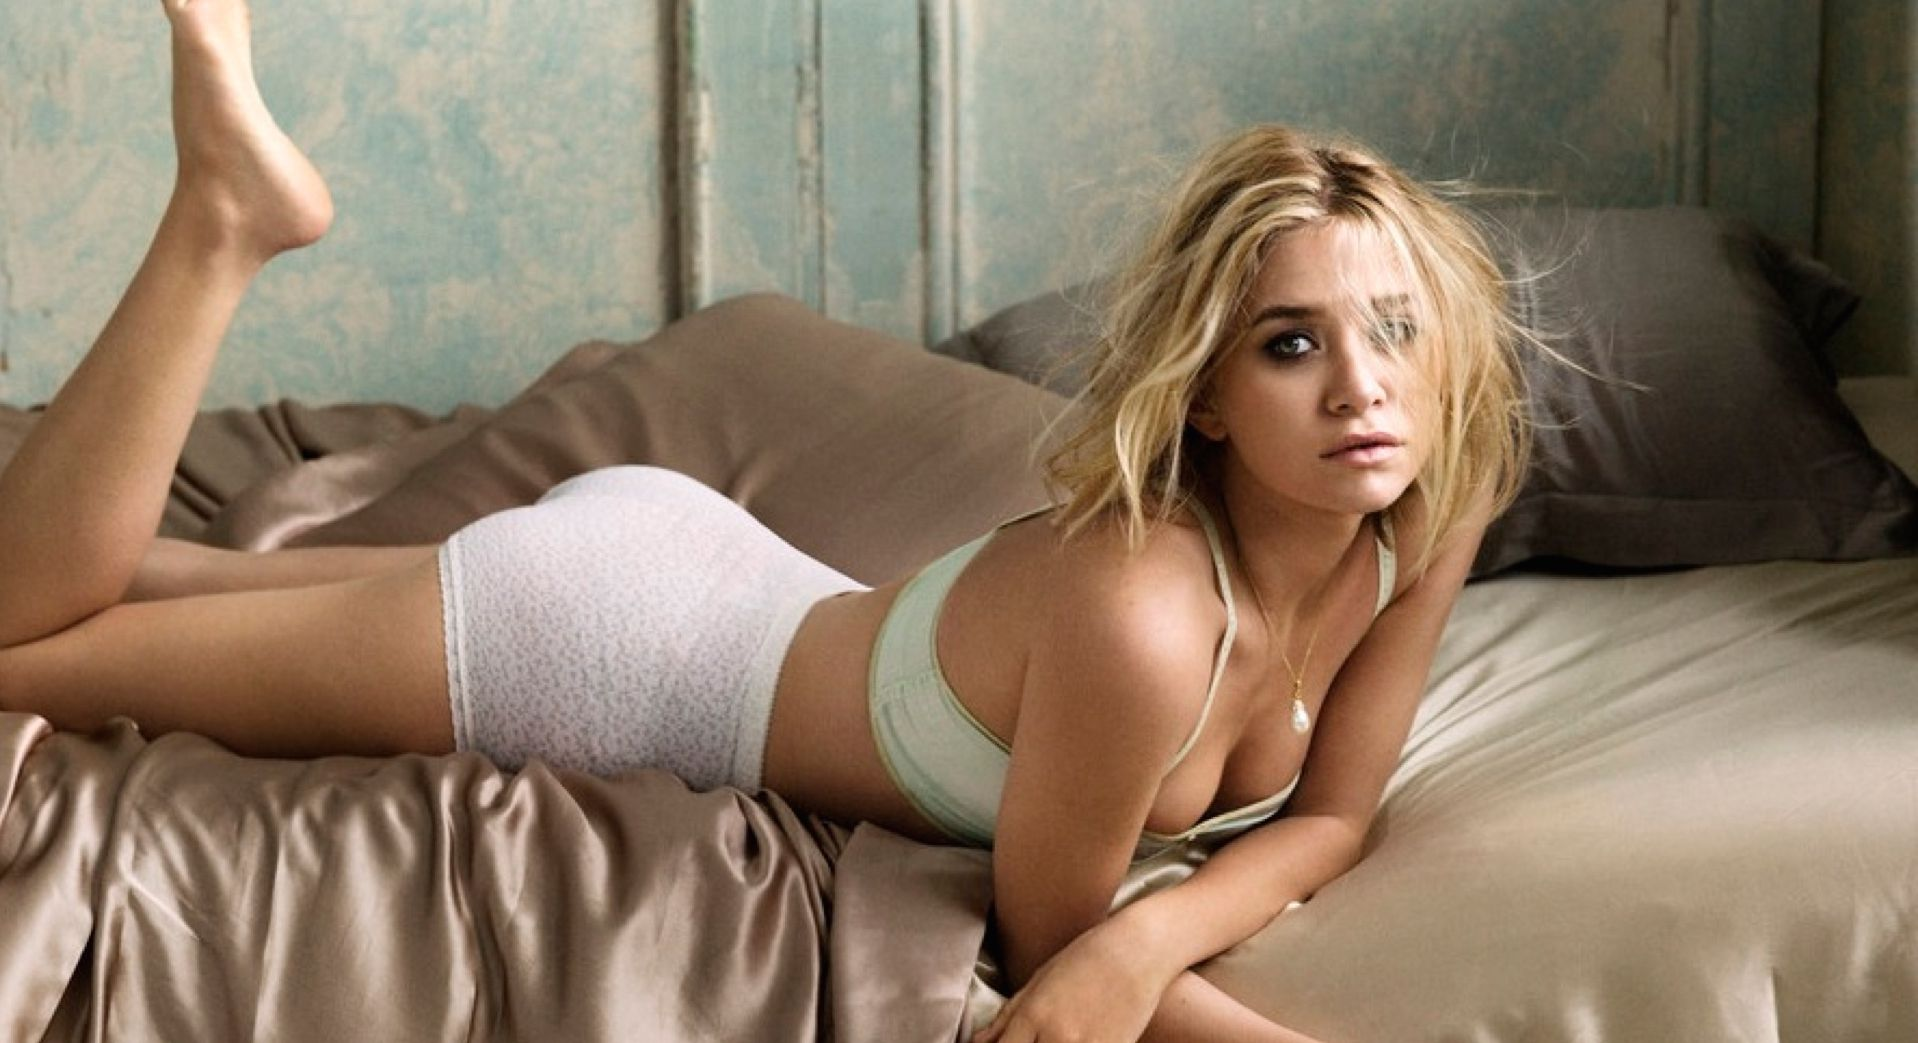 Mary kate and ashley olsen sisters hot and sexy widescreen wallpapers, pictures and slide show